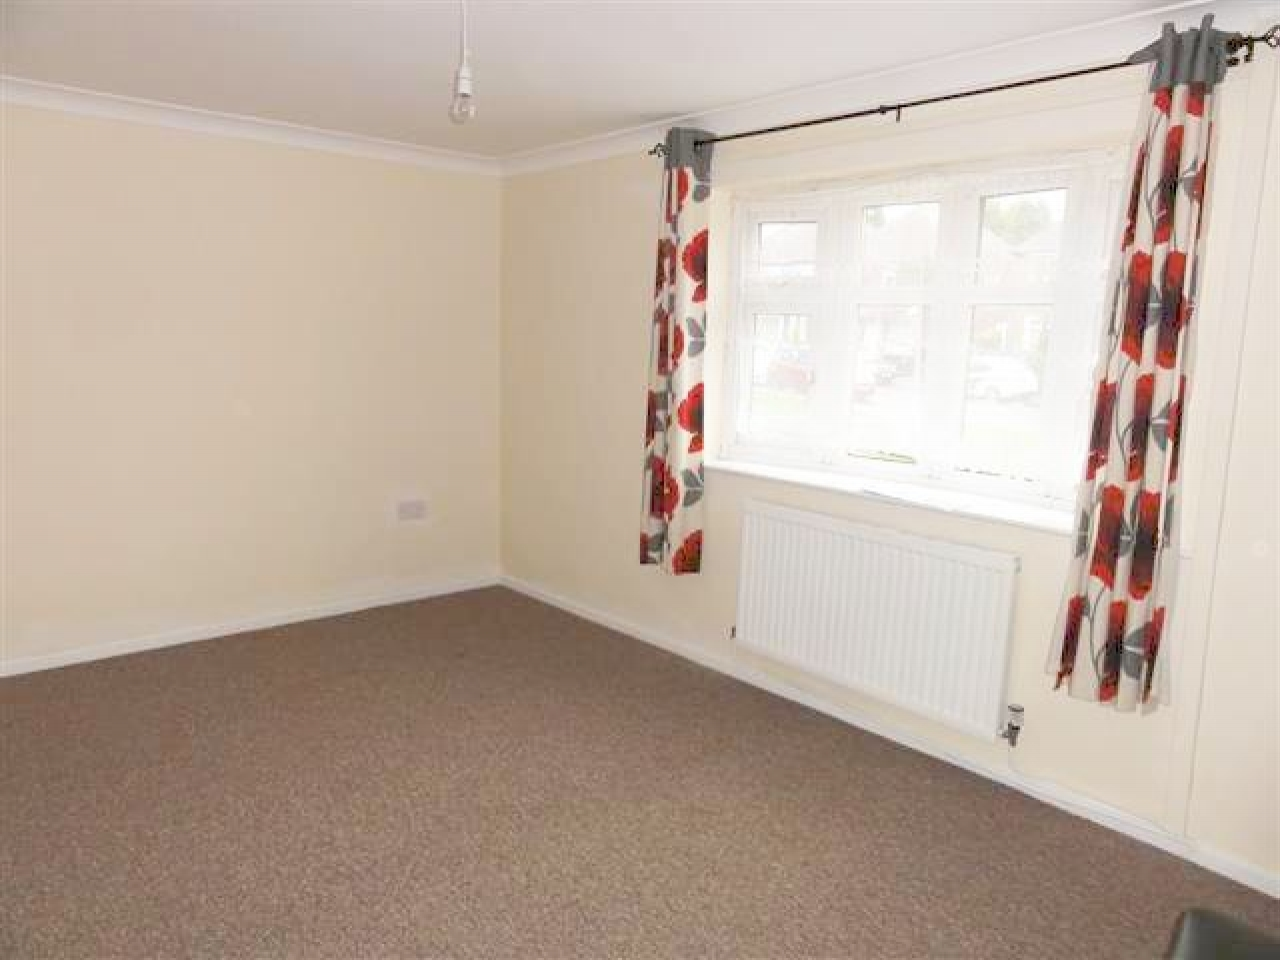 4 Bed Semi-detached House To Rent - Photograph 3